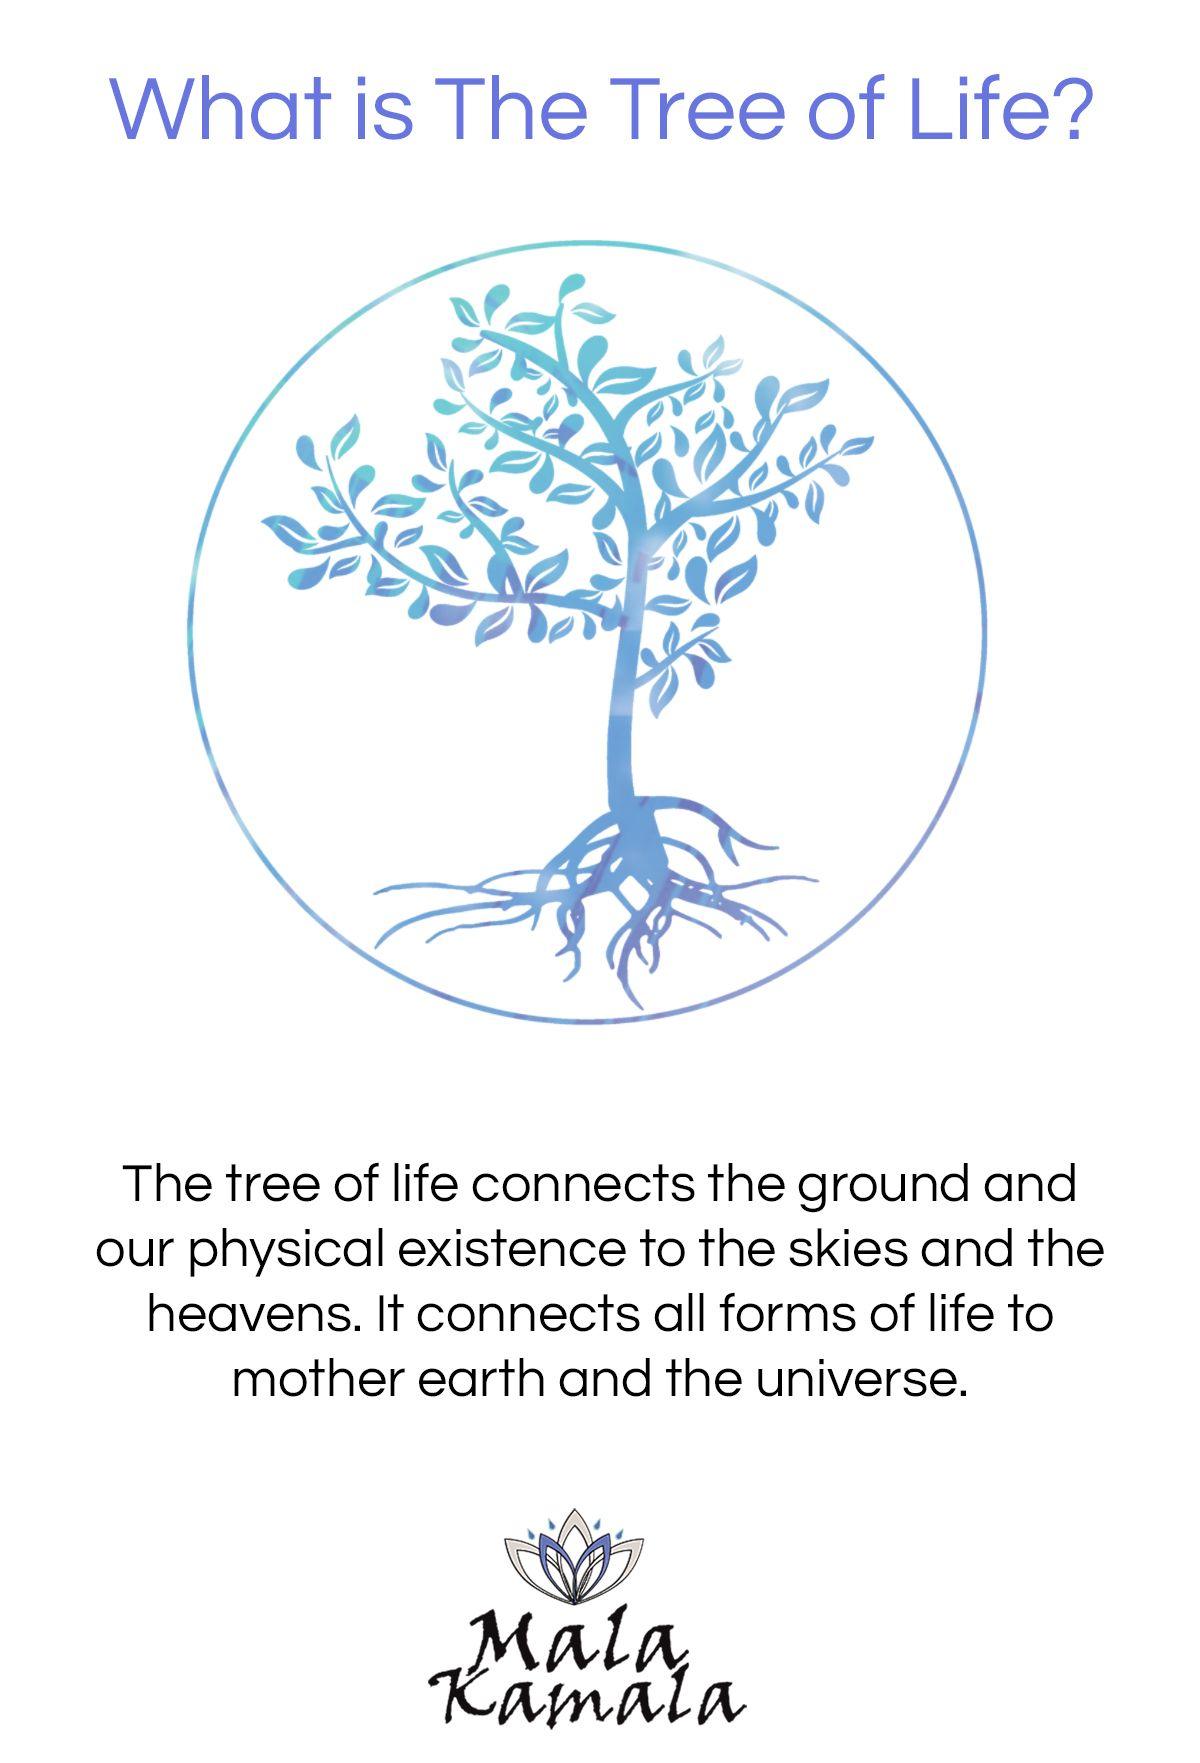 The tree of life connects the ground and our physical existence to what is the tree of life what does the tree of life mean where does the tree of life originate spiritual yoga symbols and what they mean biocorpaavc Images